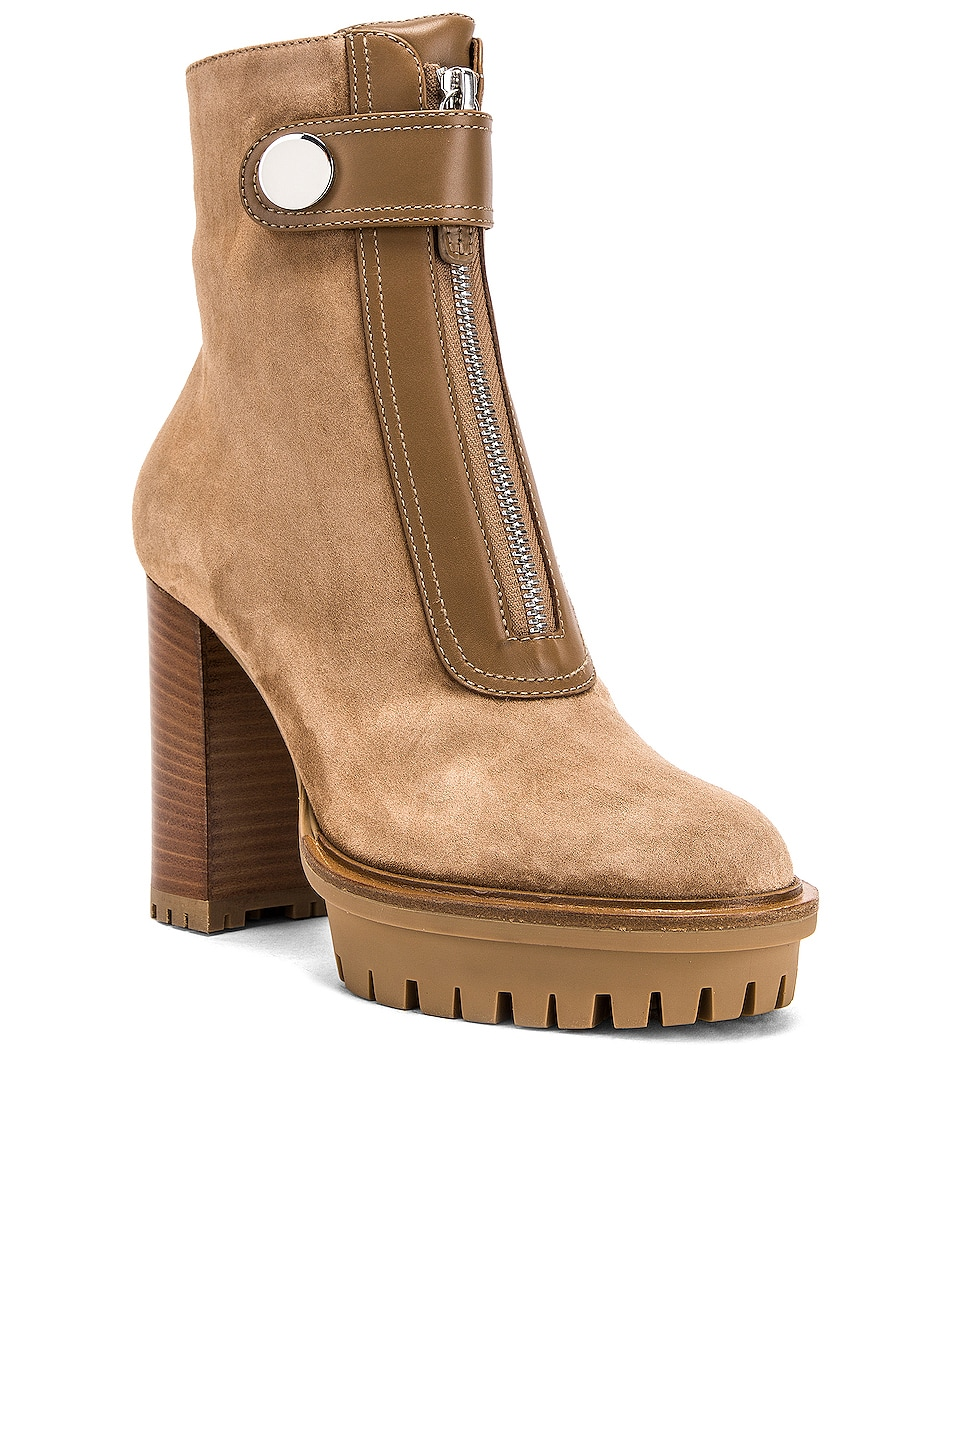 Image 2 of Gianvito Rossi Julian Zipper Ankle Heel Boots in Camel